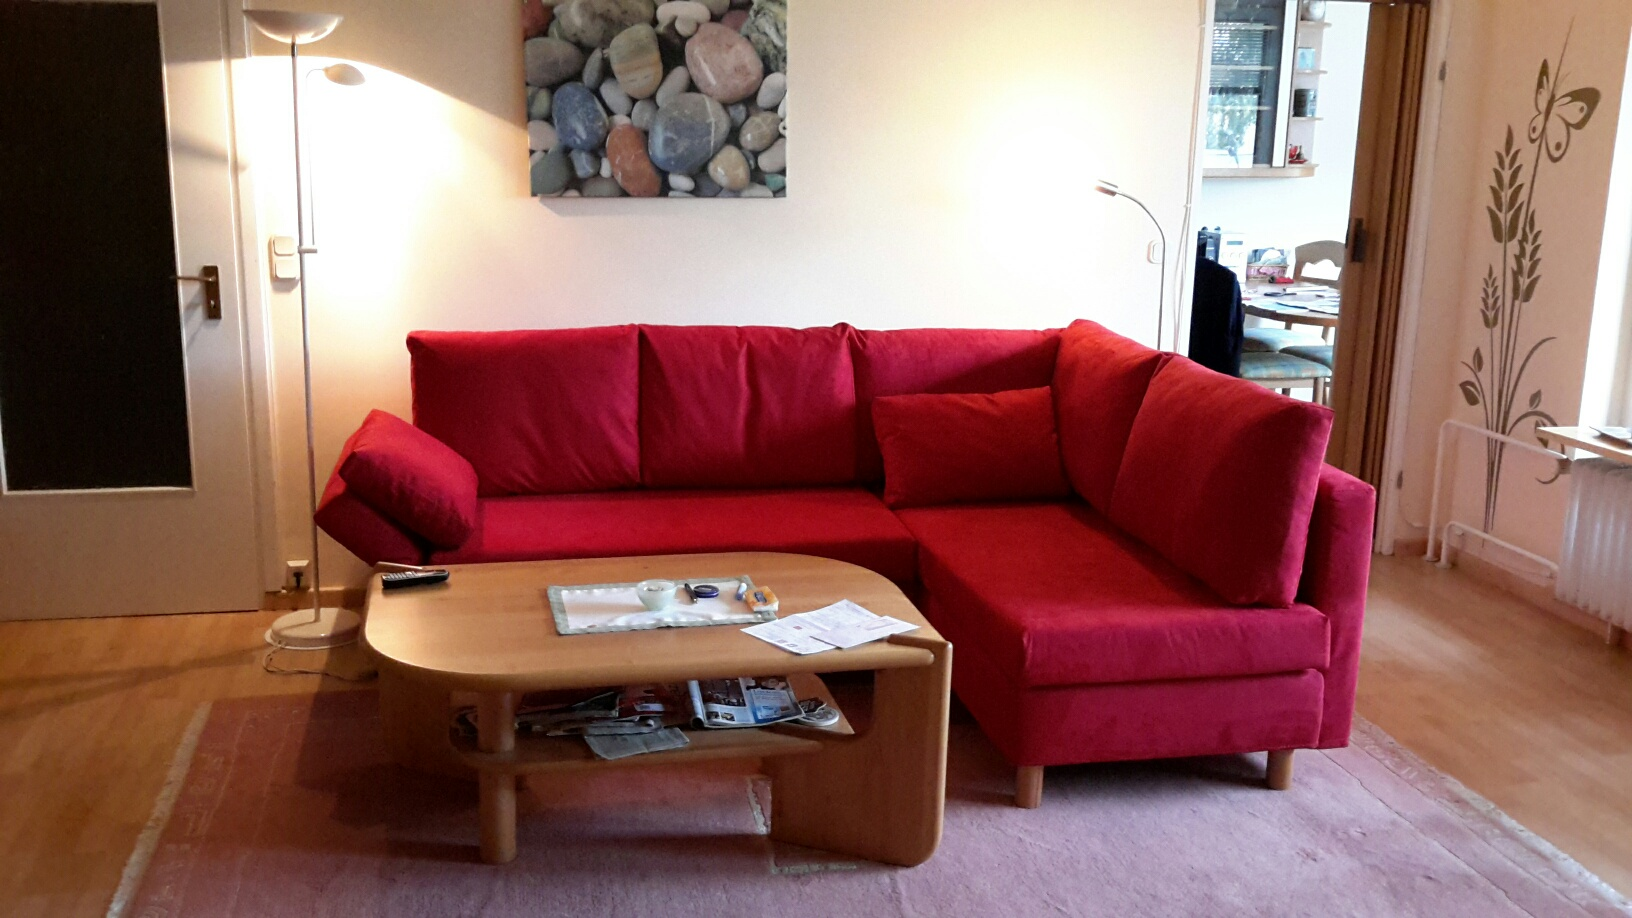 Rote couch wohnzimmer passende wandfarbe - Rote wandfarbe ...